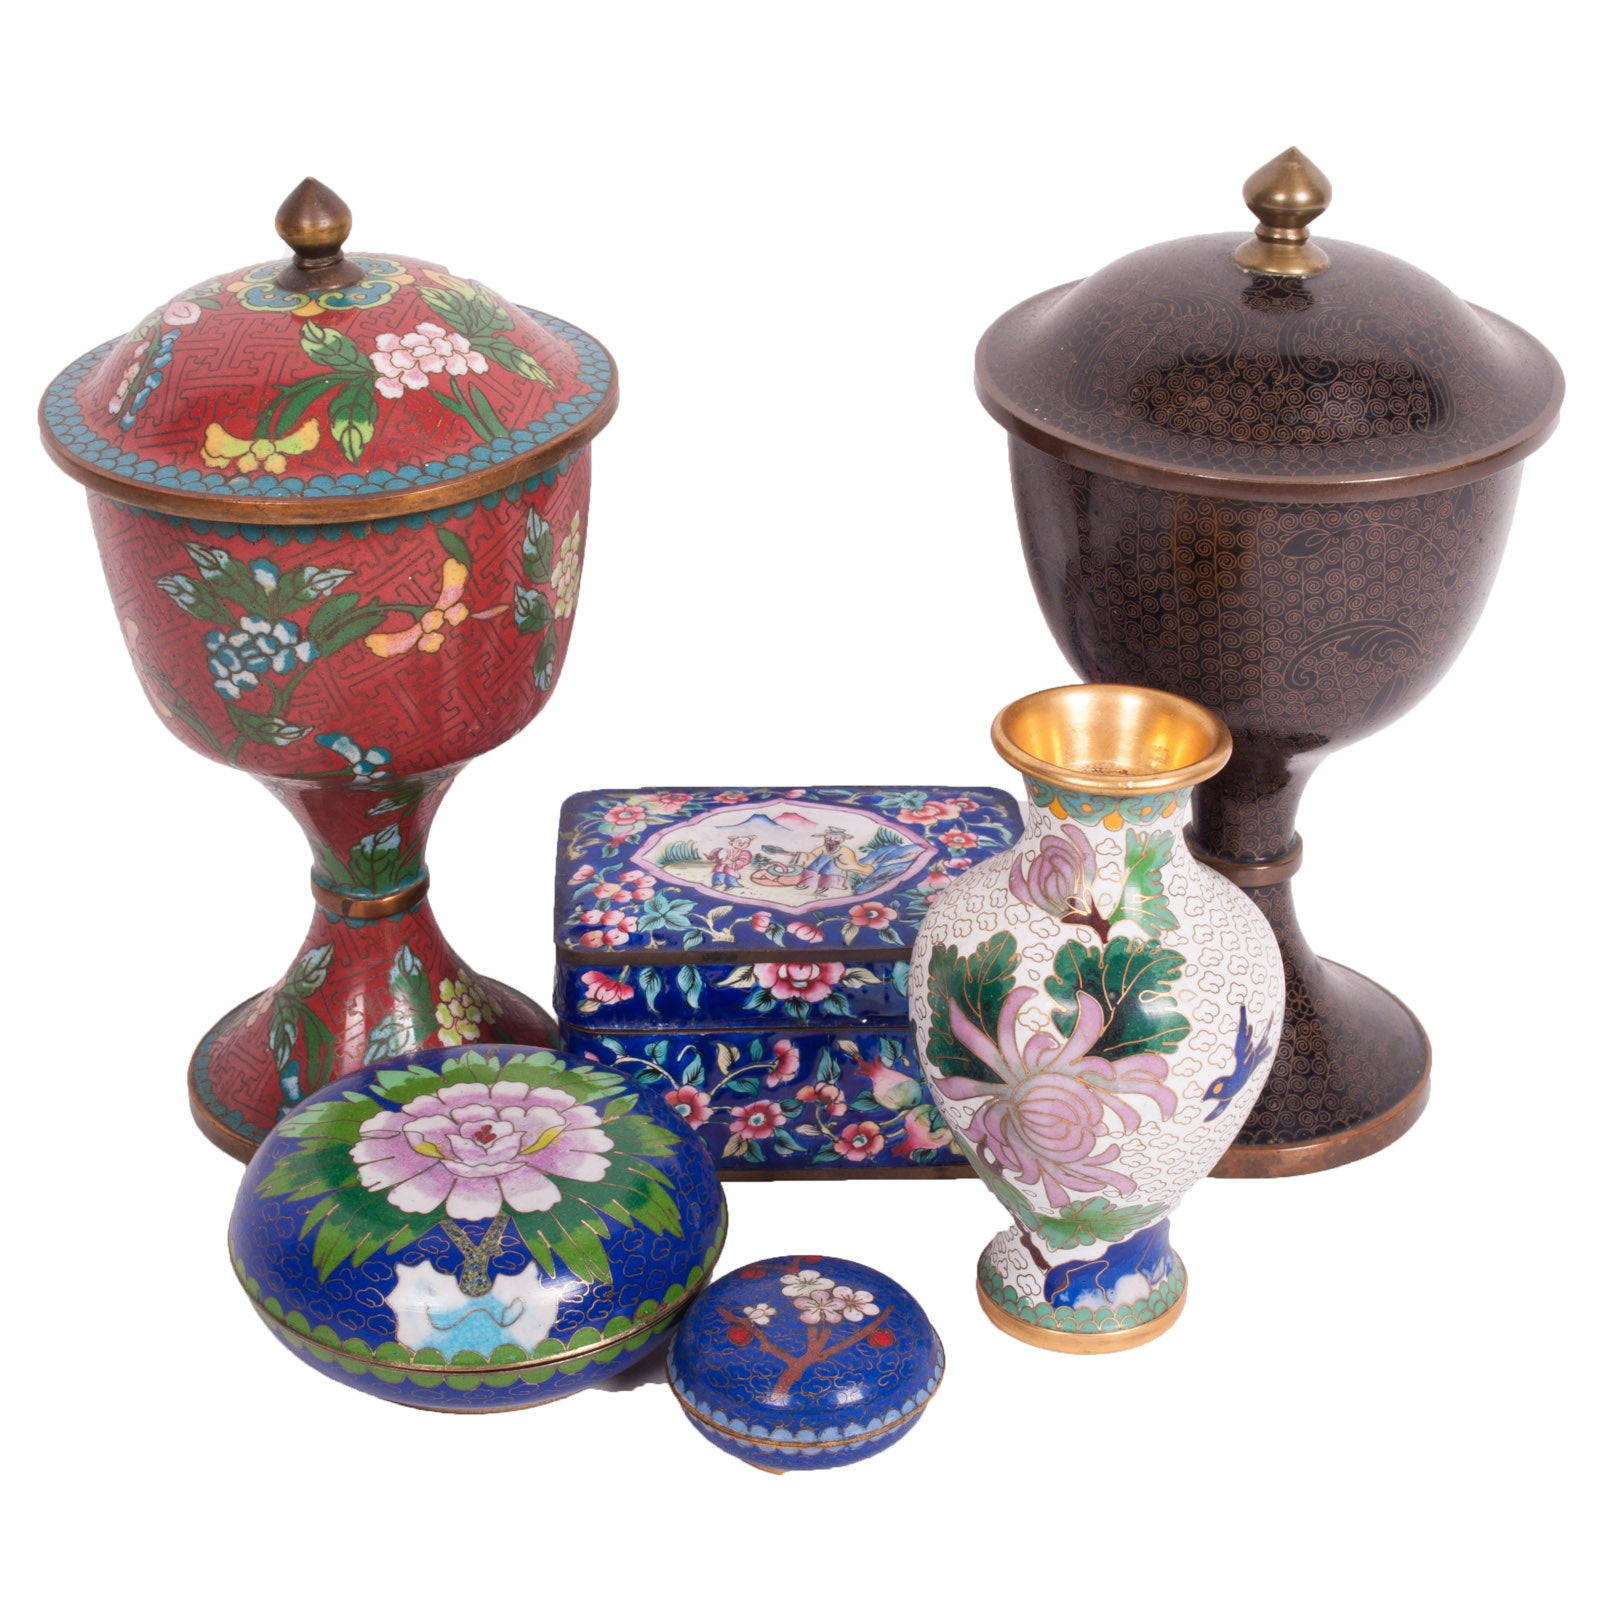 Chinese Cloisonné Decorative Assortment